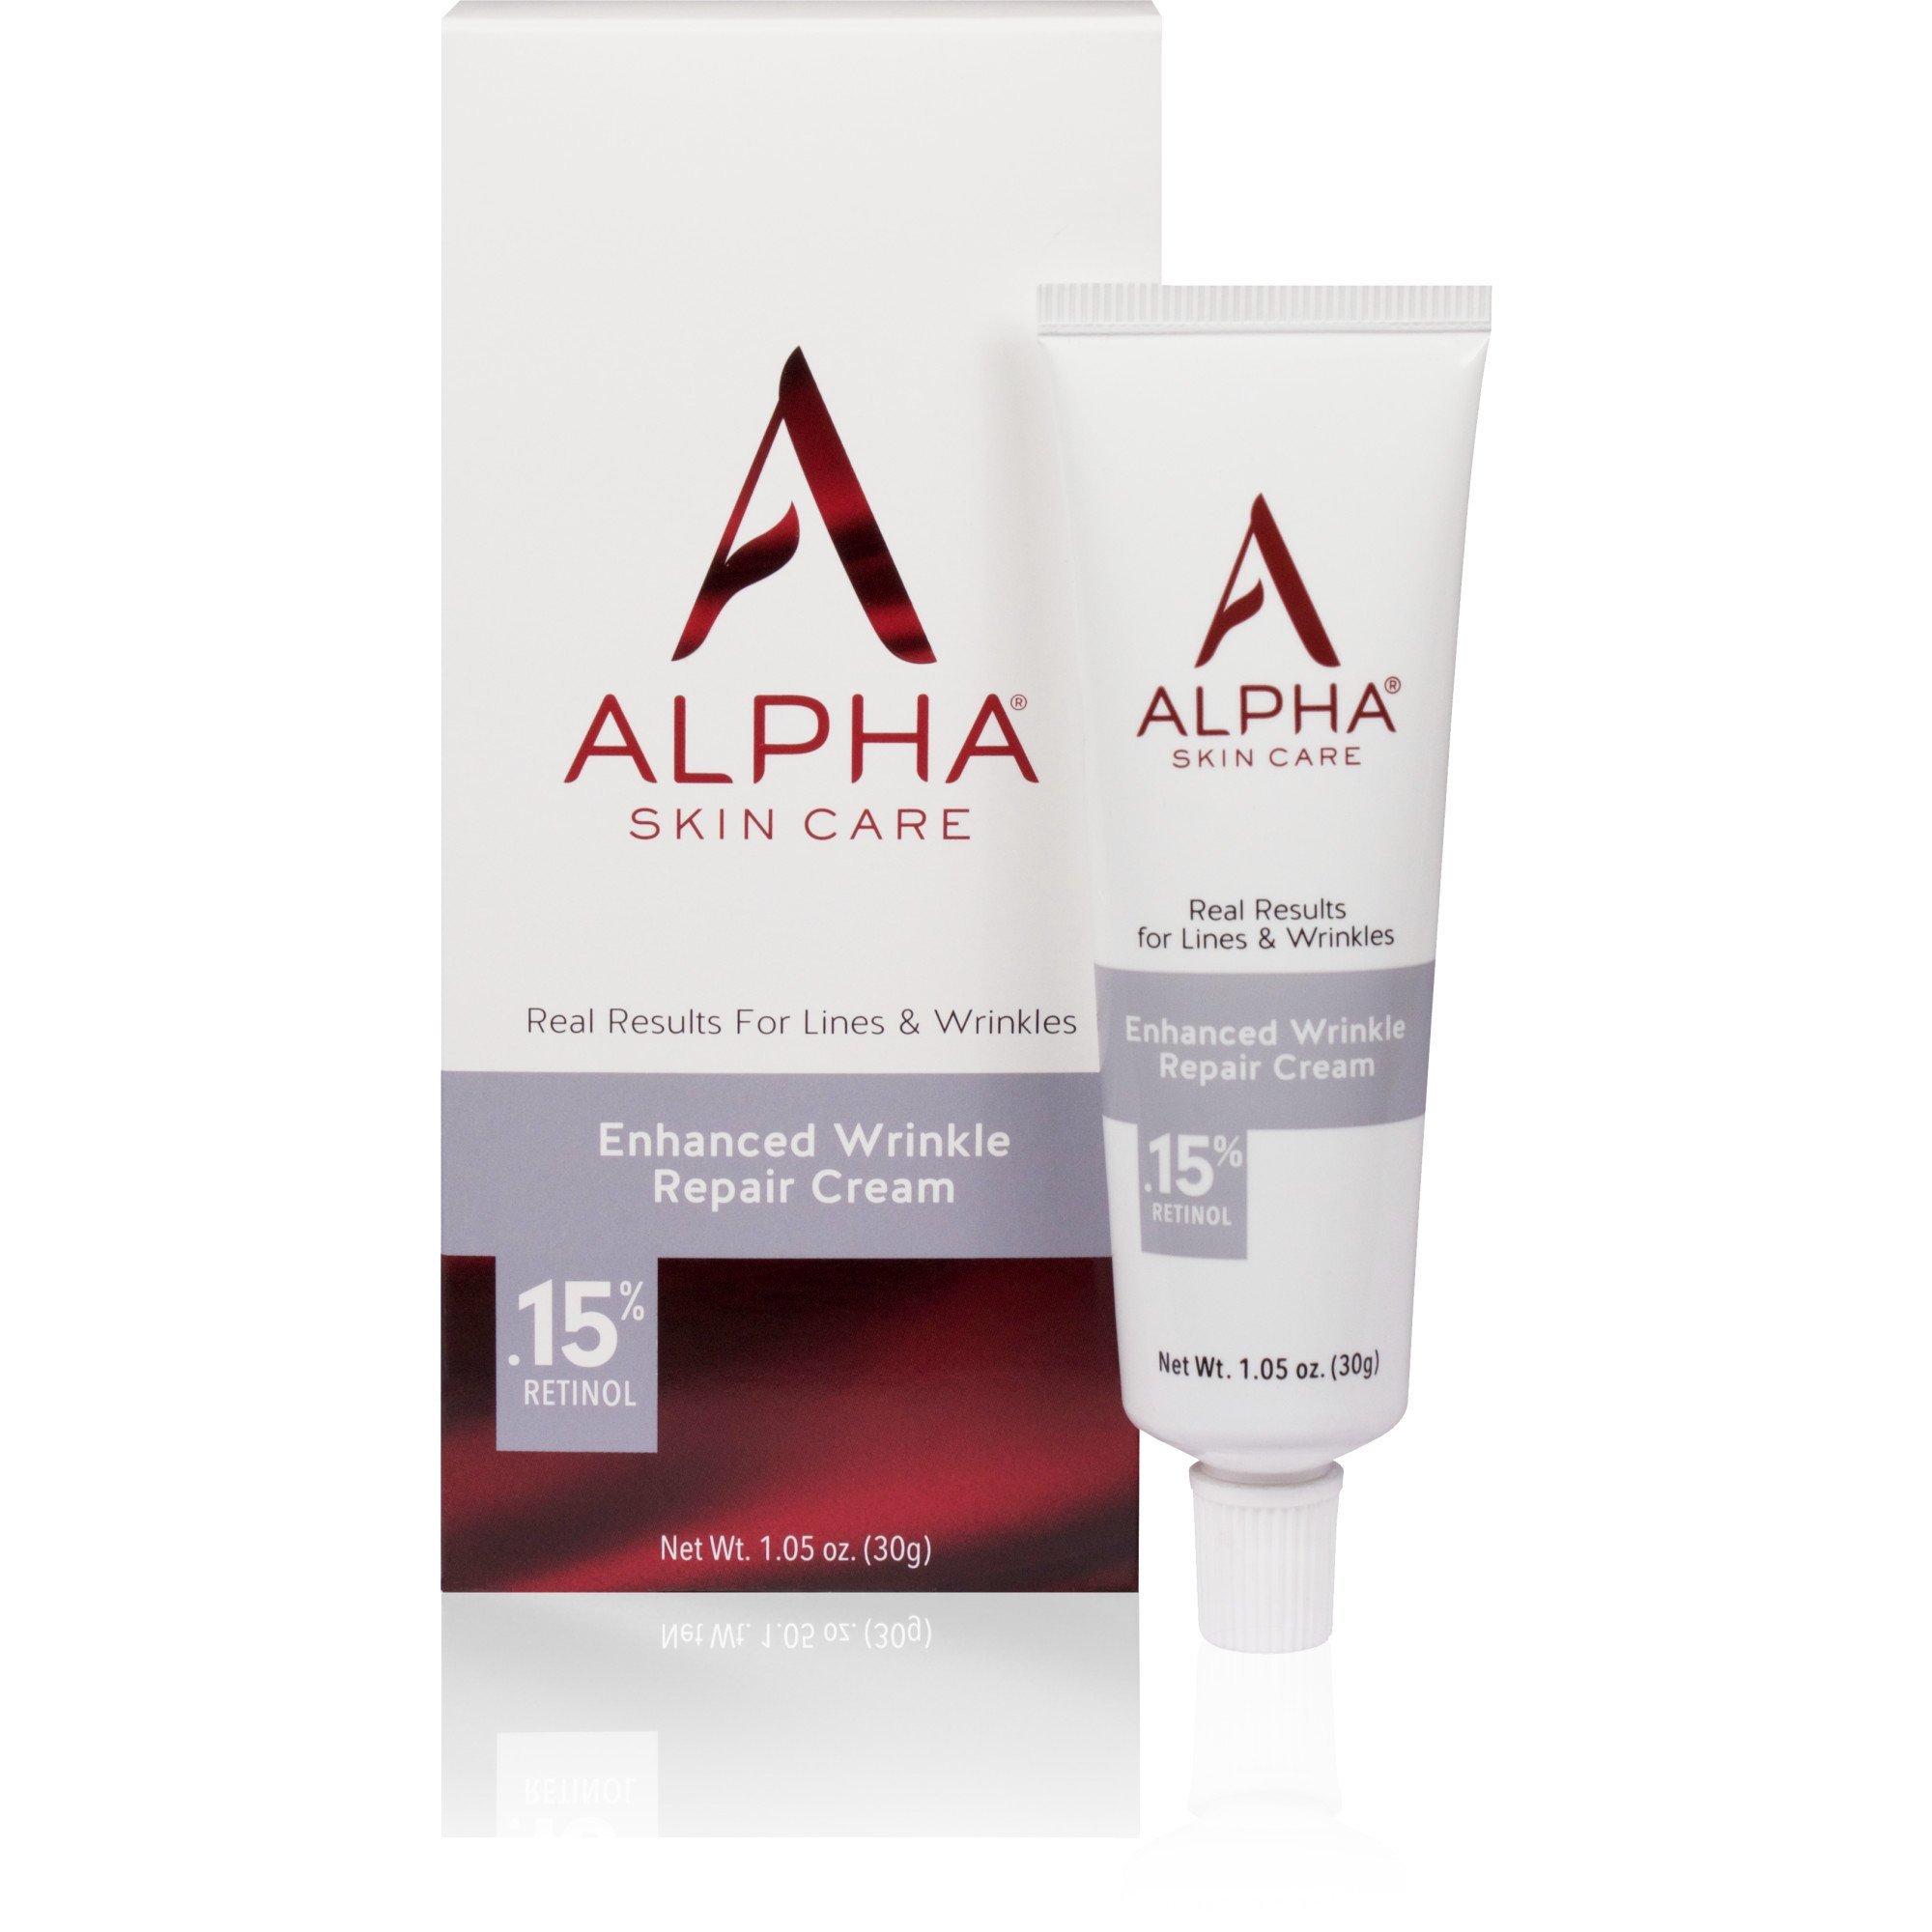 Alpha Skin Care - Enhanced Wrinkle Repair Cream, .15% Retinol, Real Results for Lines and Wrinkles| Fragrance-Free| 1.05-Ounce by Alpha Skin Care